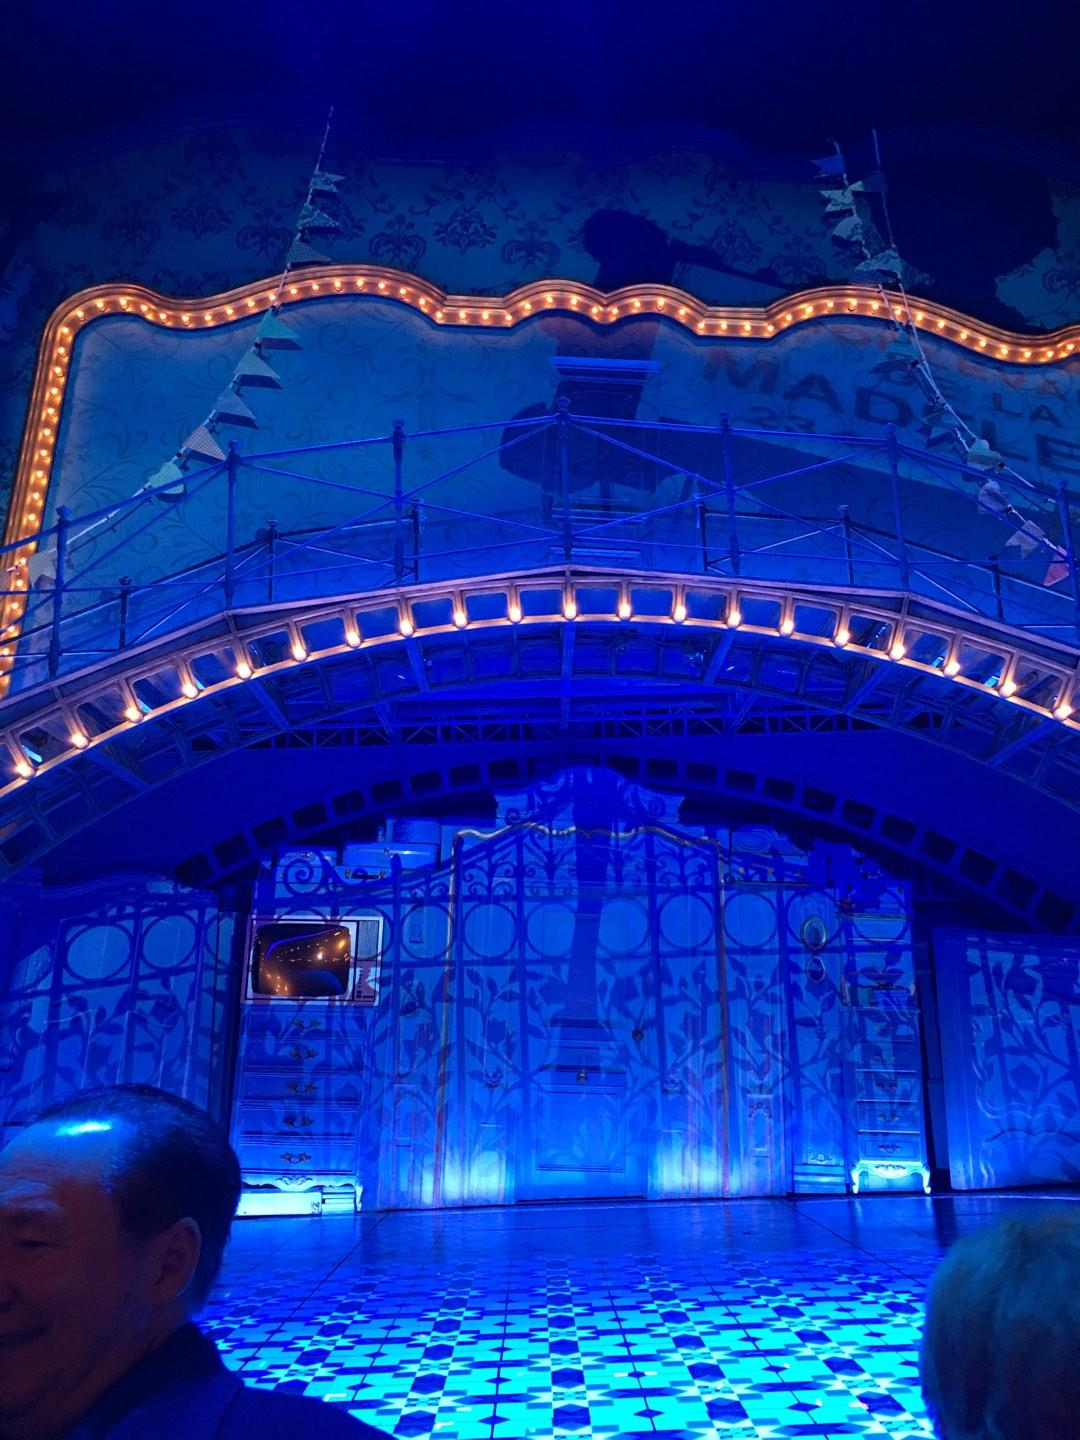 Walter Kerr Theatre Section Orch Center Row 1 Seat 106